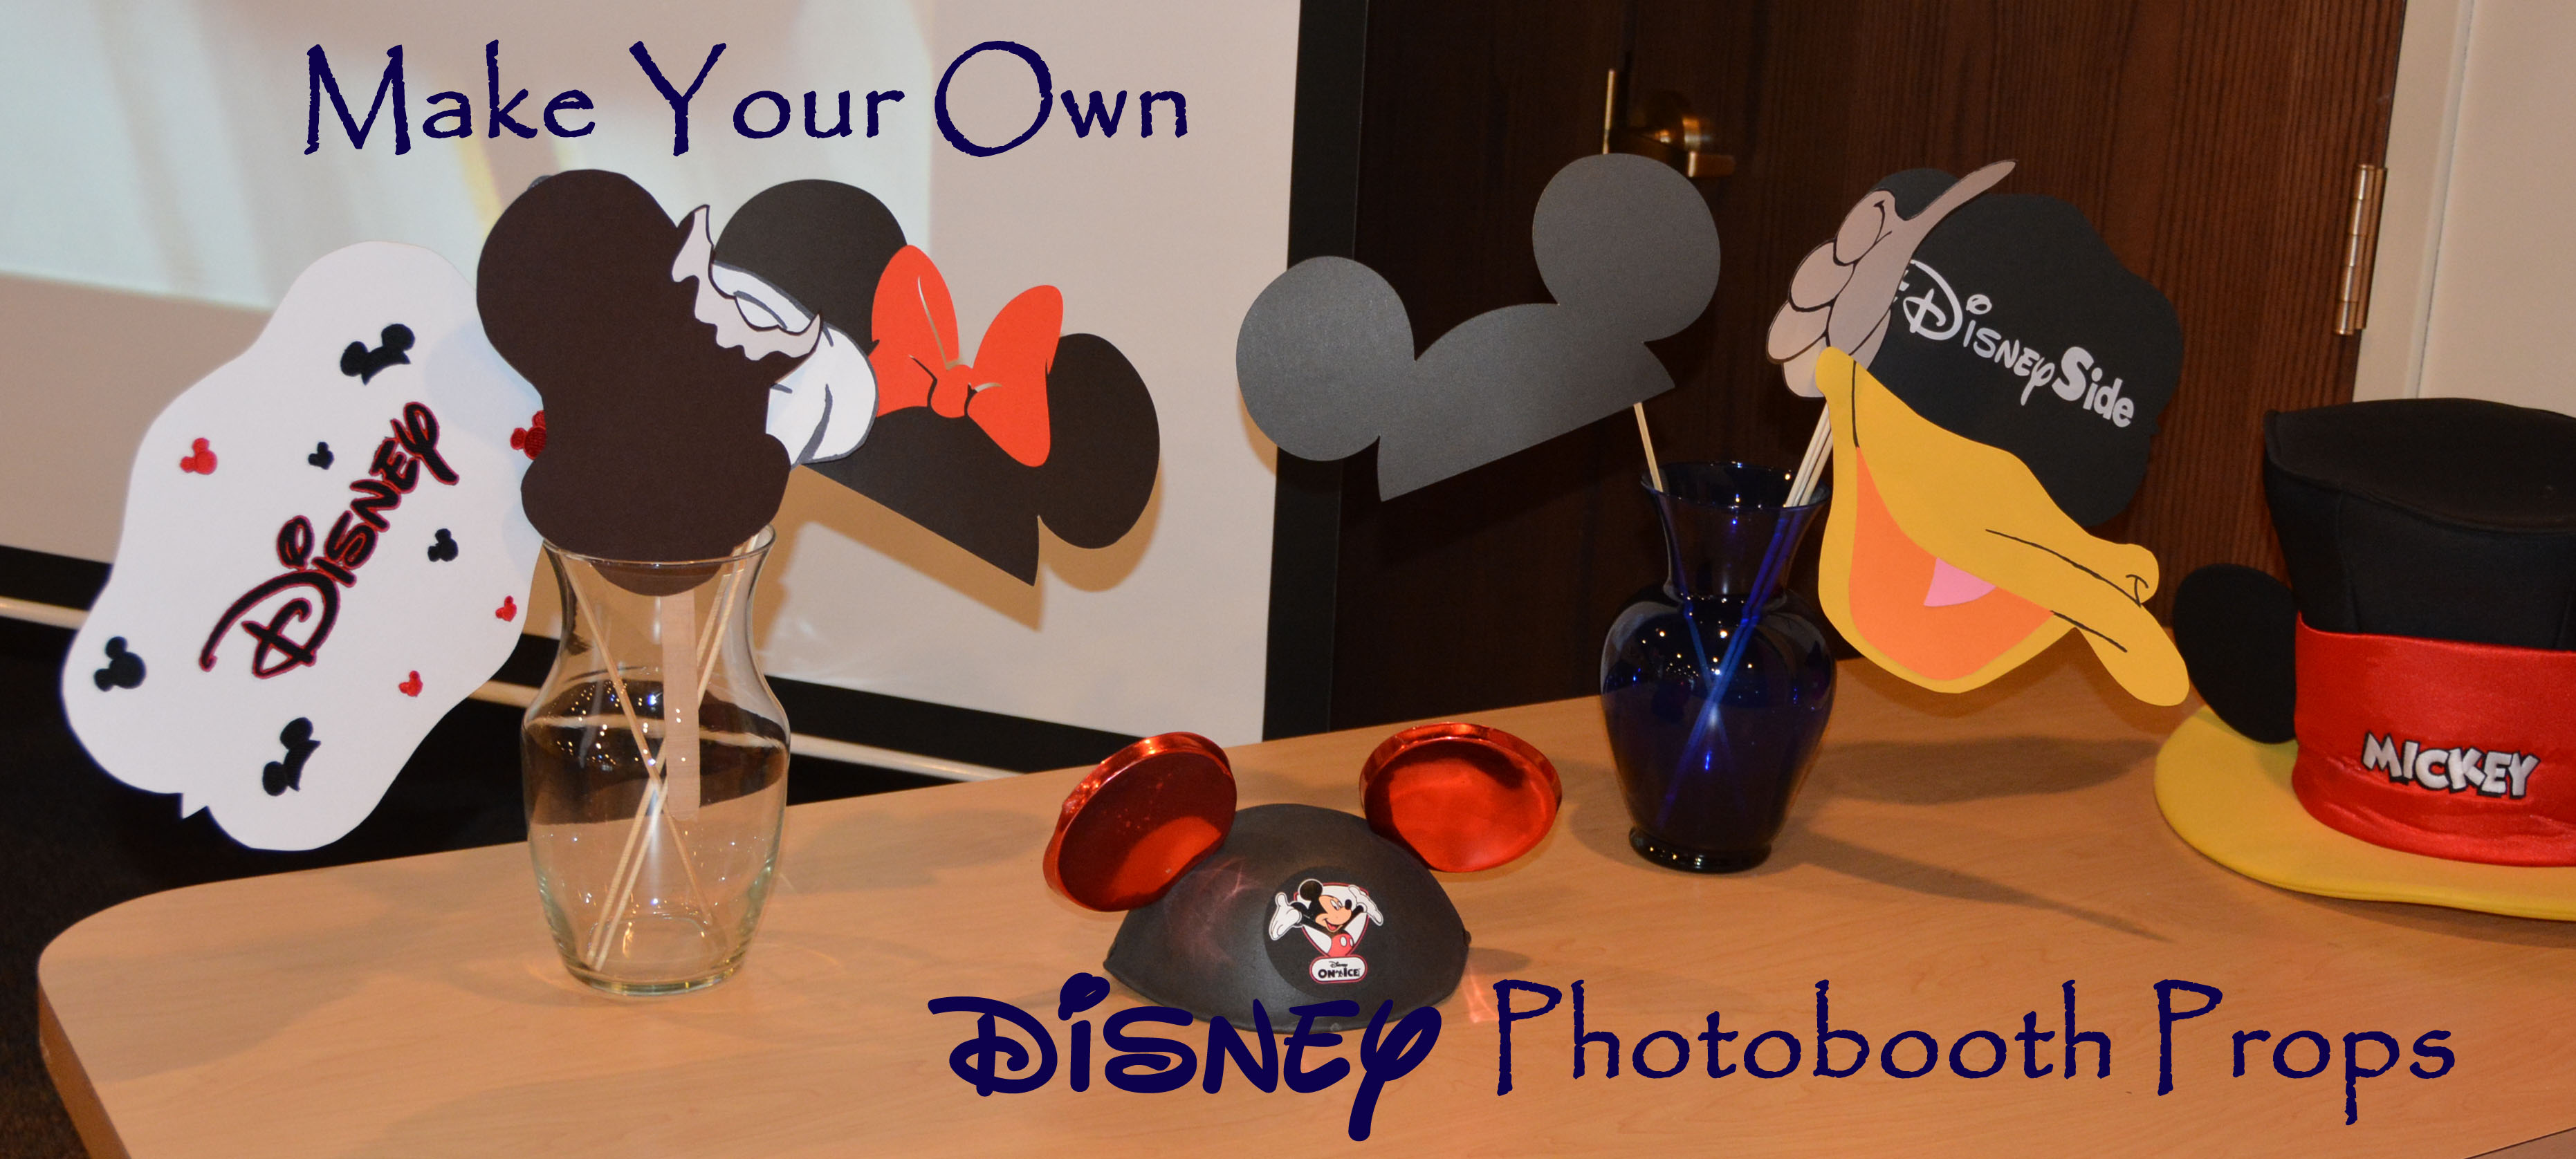 How To Make Disney booth Props with FREE printables 4 The